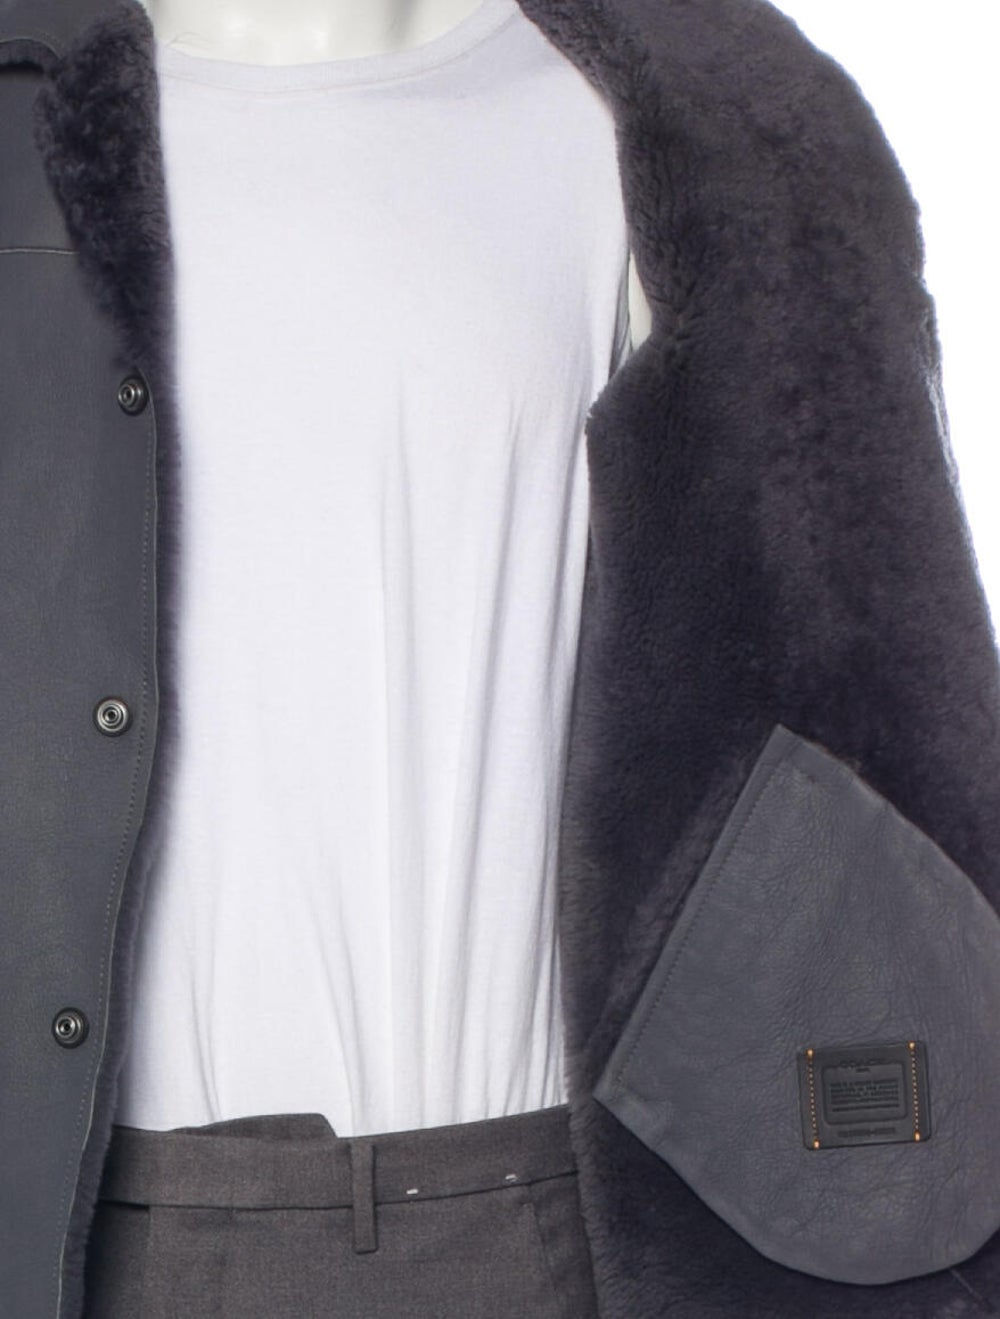 Coach 1941 Shearling-Lined Leather Jacket grey - image 4